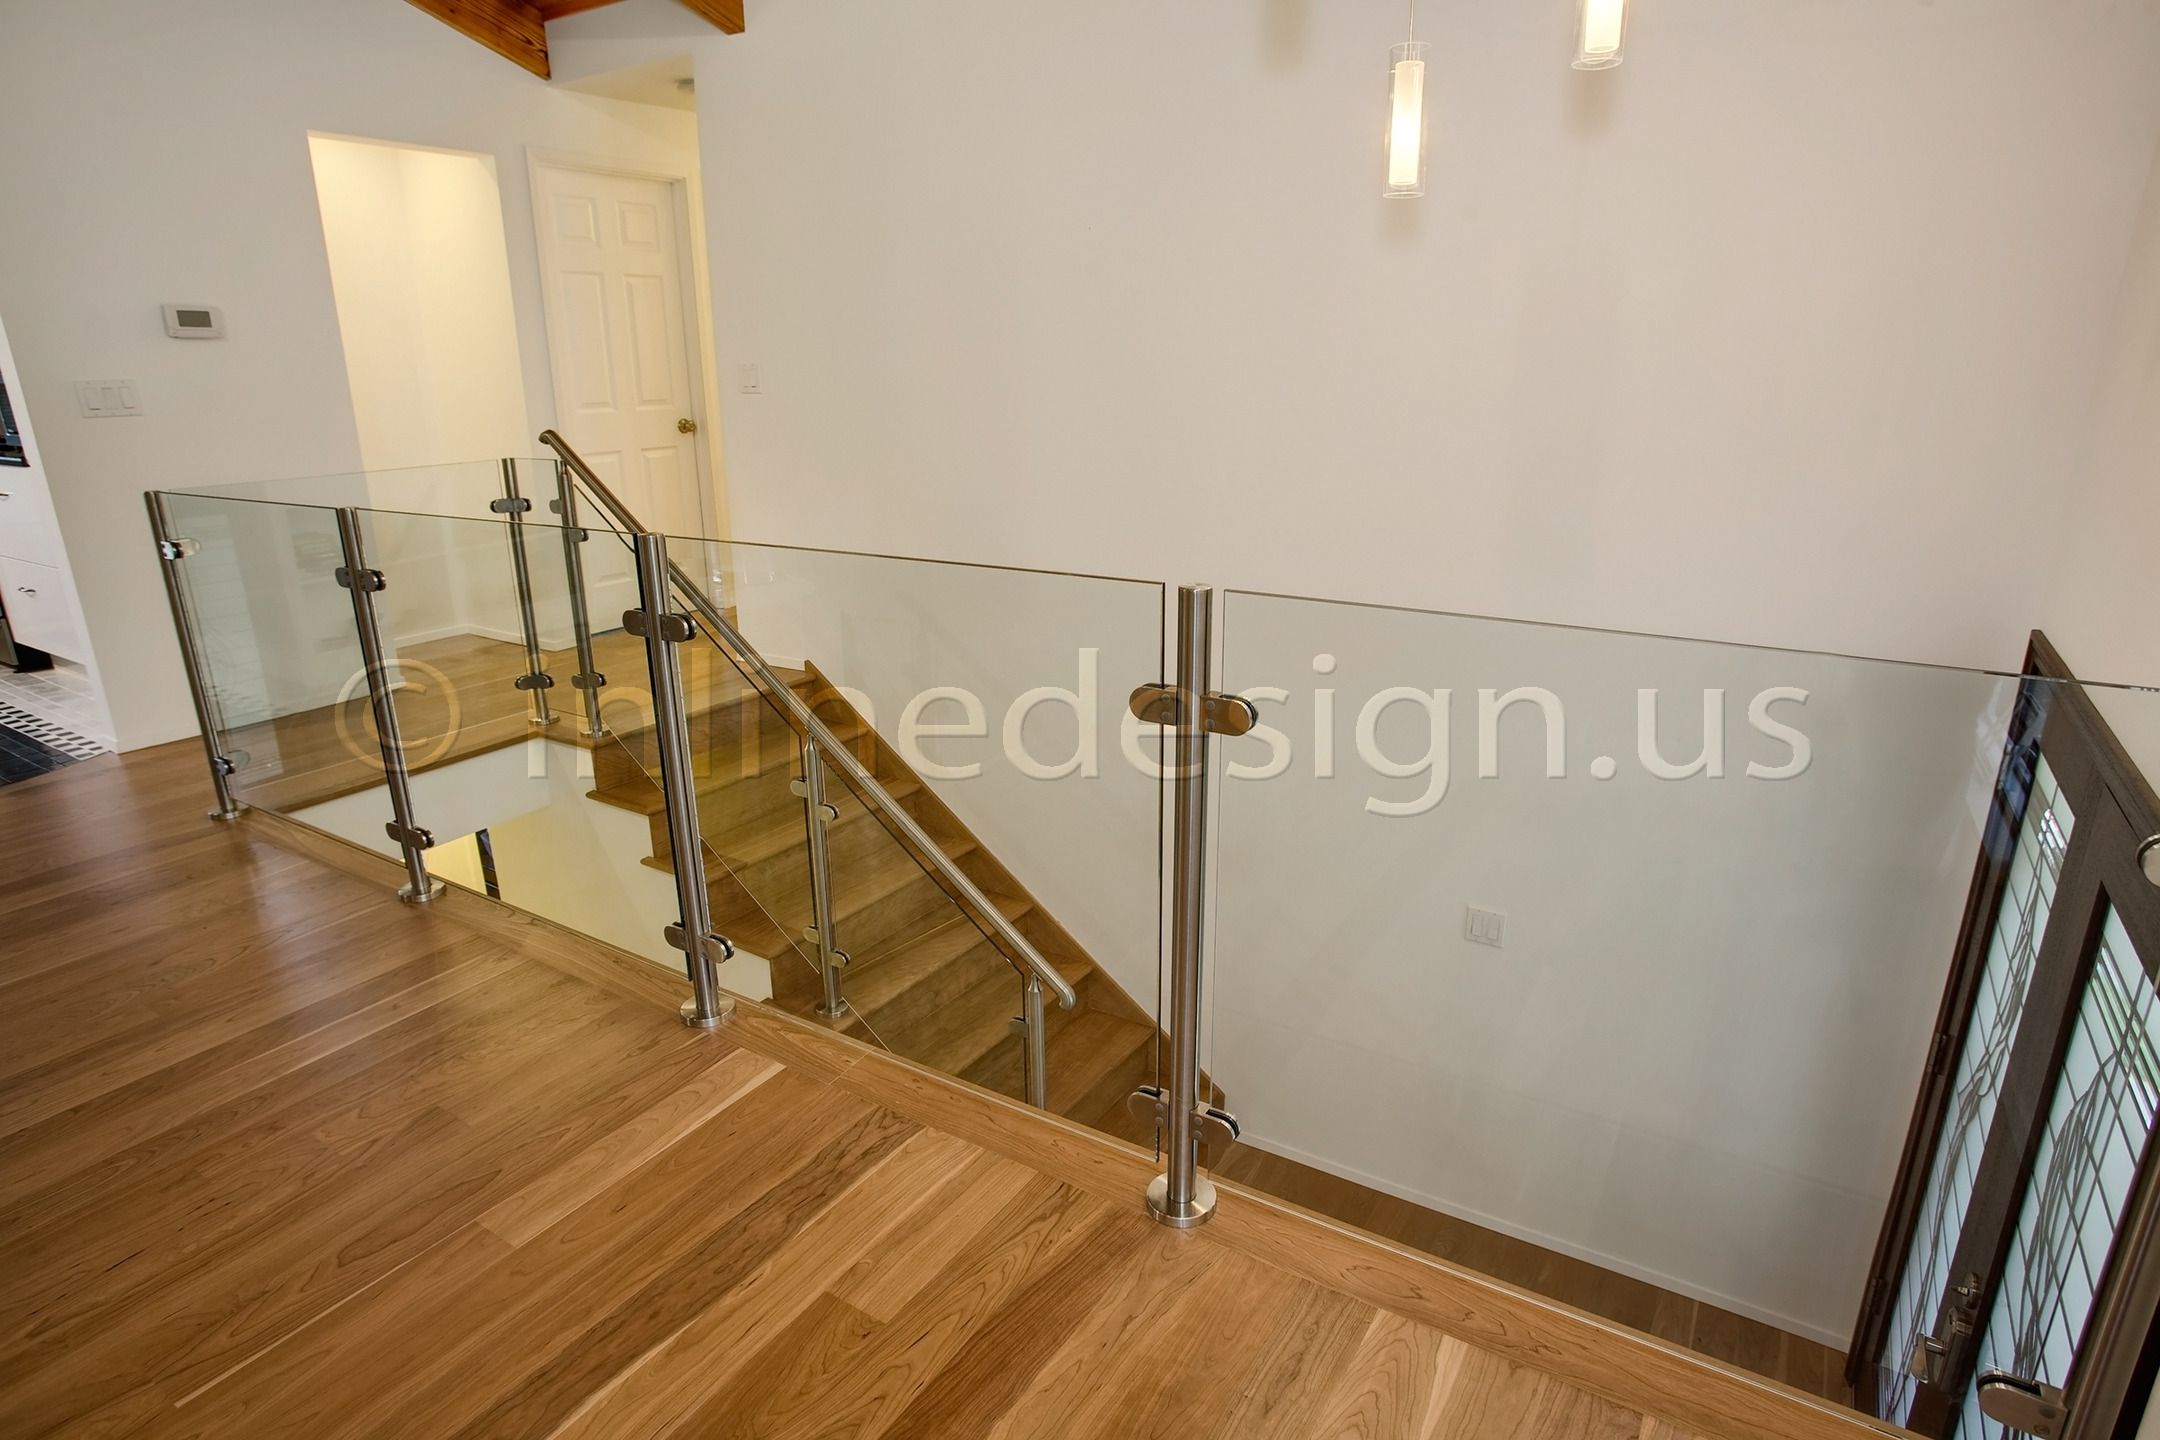 Contemporary Glass Railings Wa Album Modern Stainless Steel Railing Handrail Of Cable